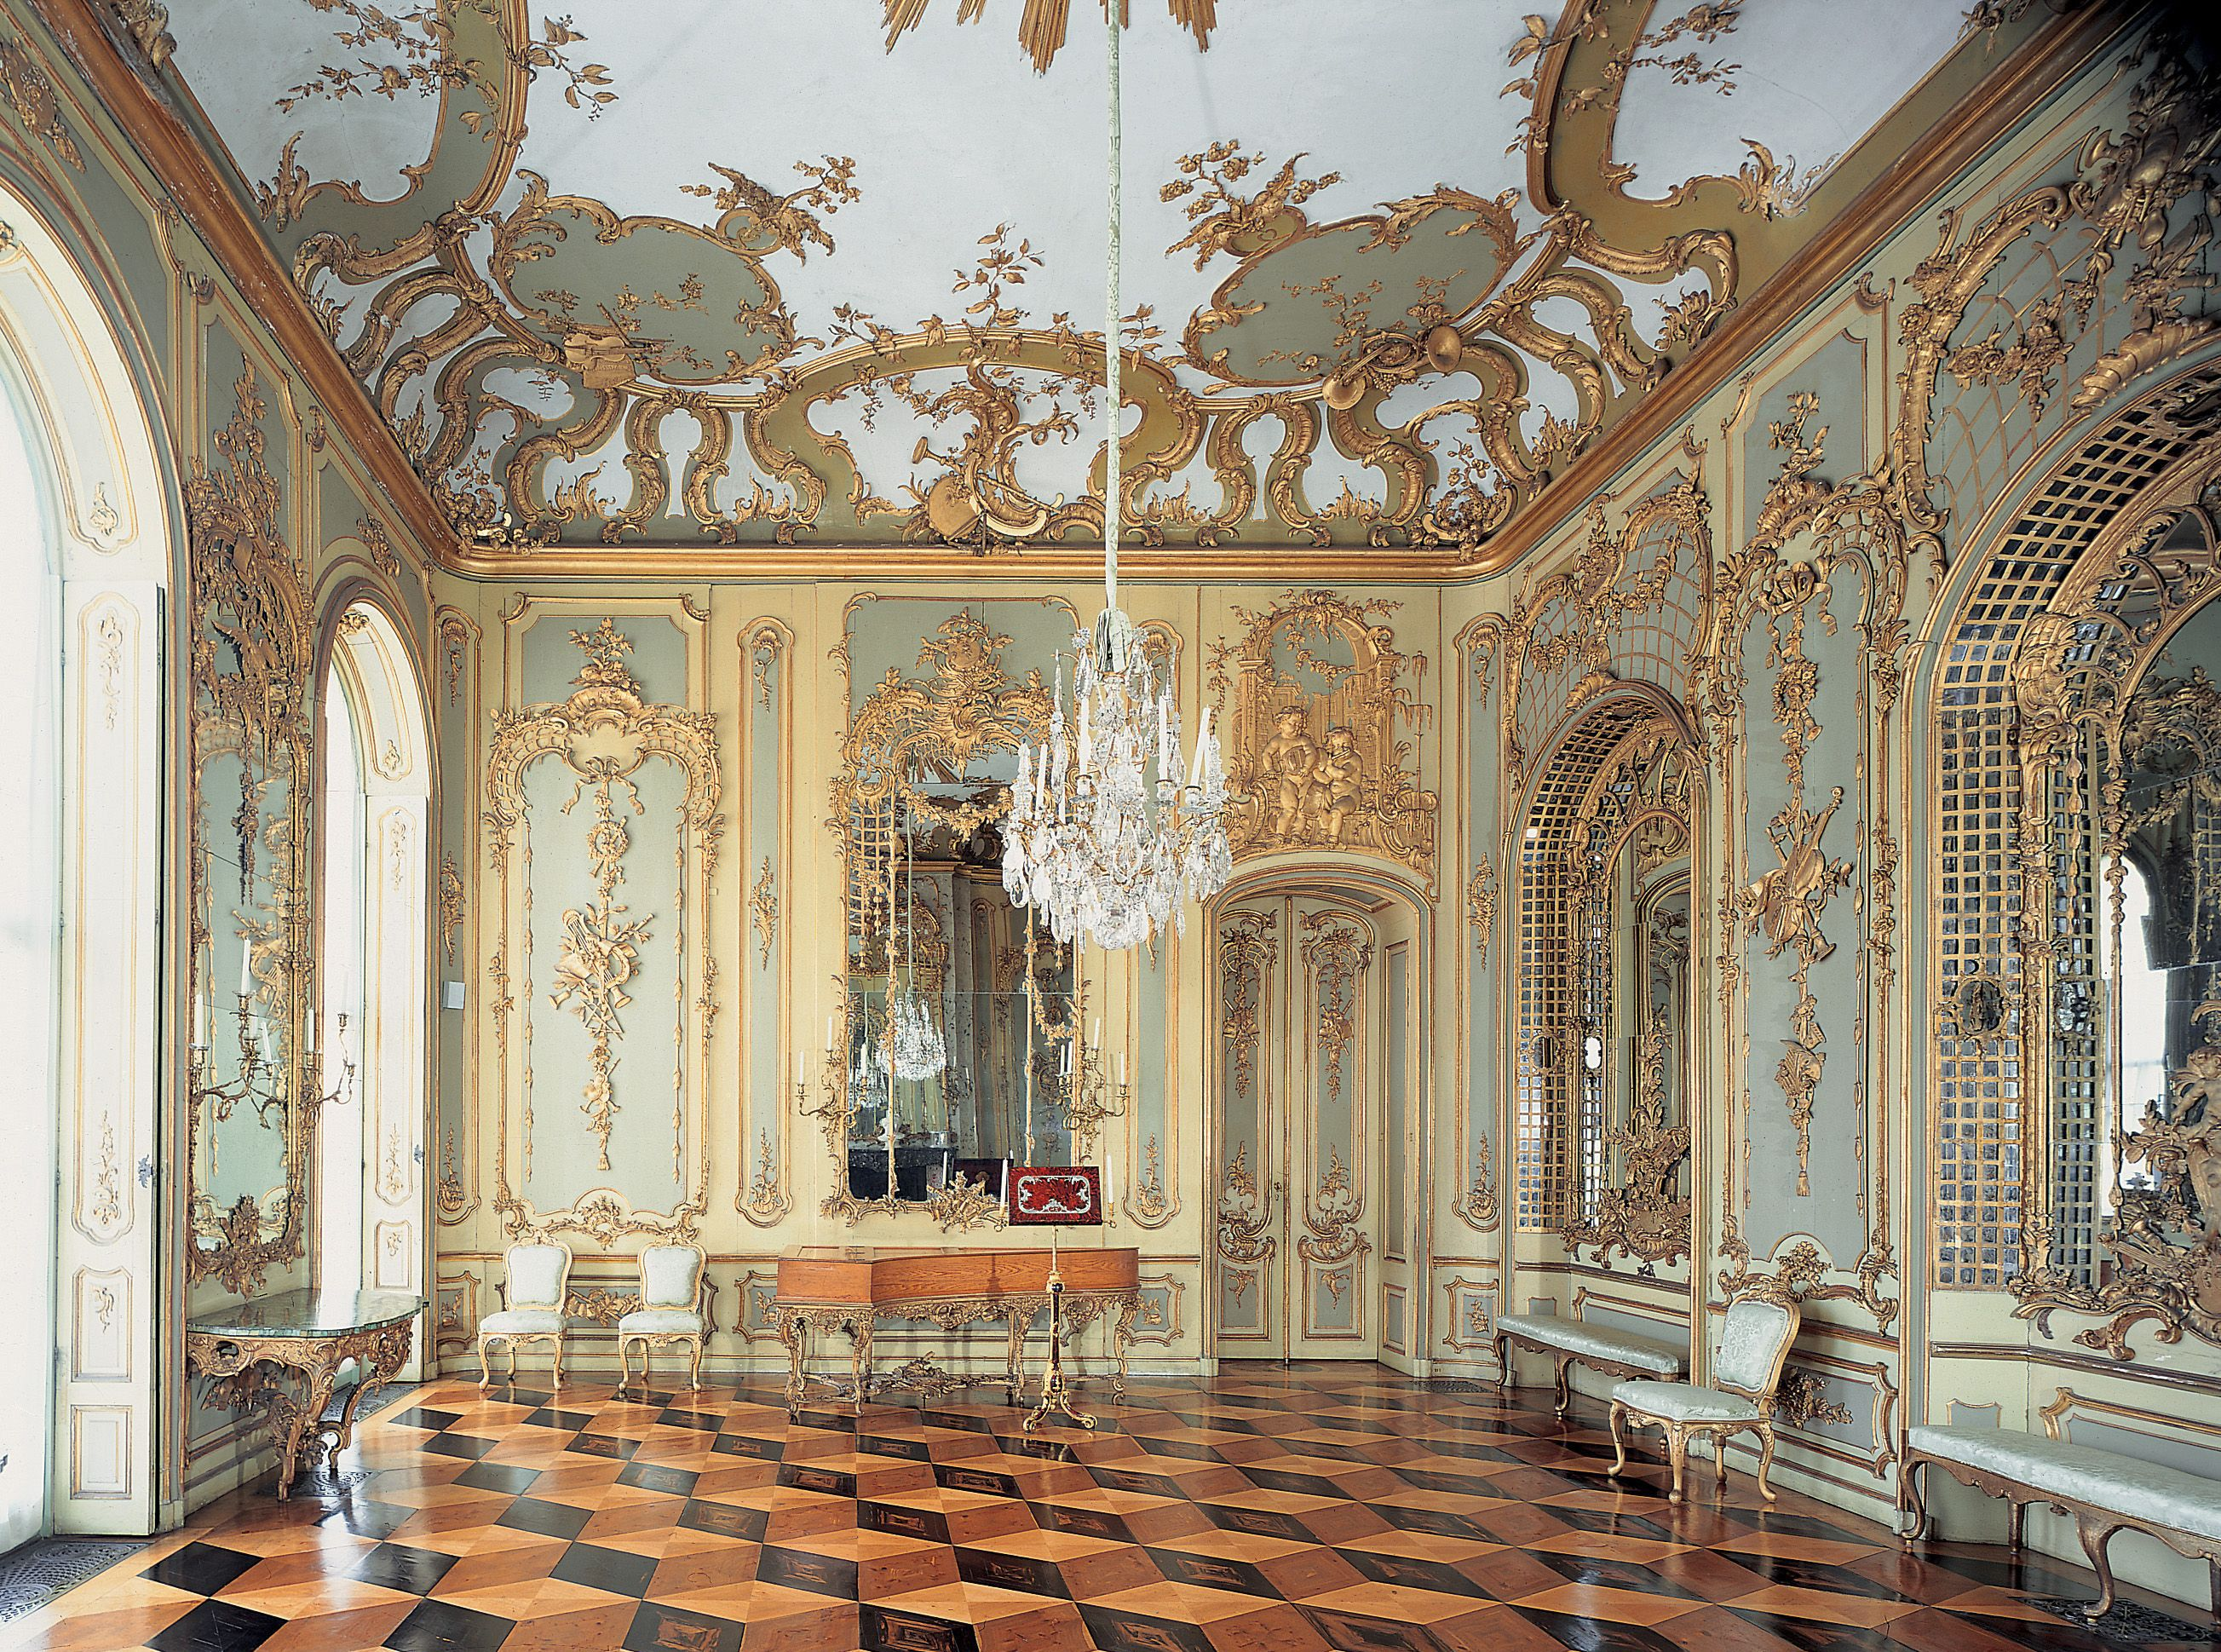 Neues Palais Architecture Palace Interior Old Houses